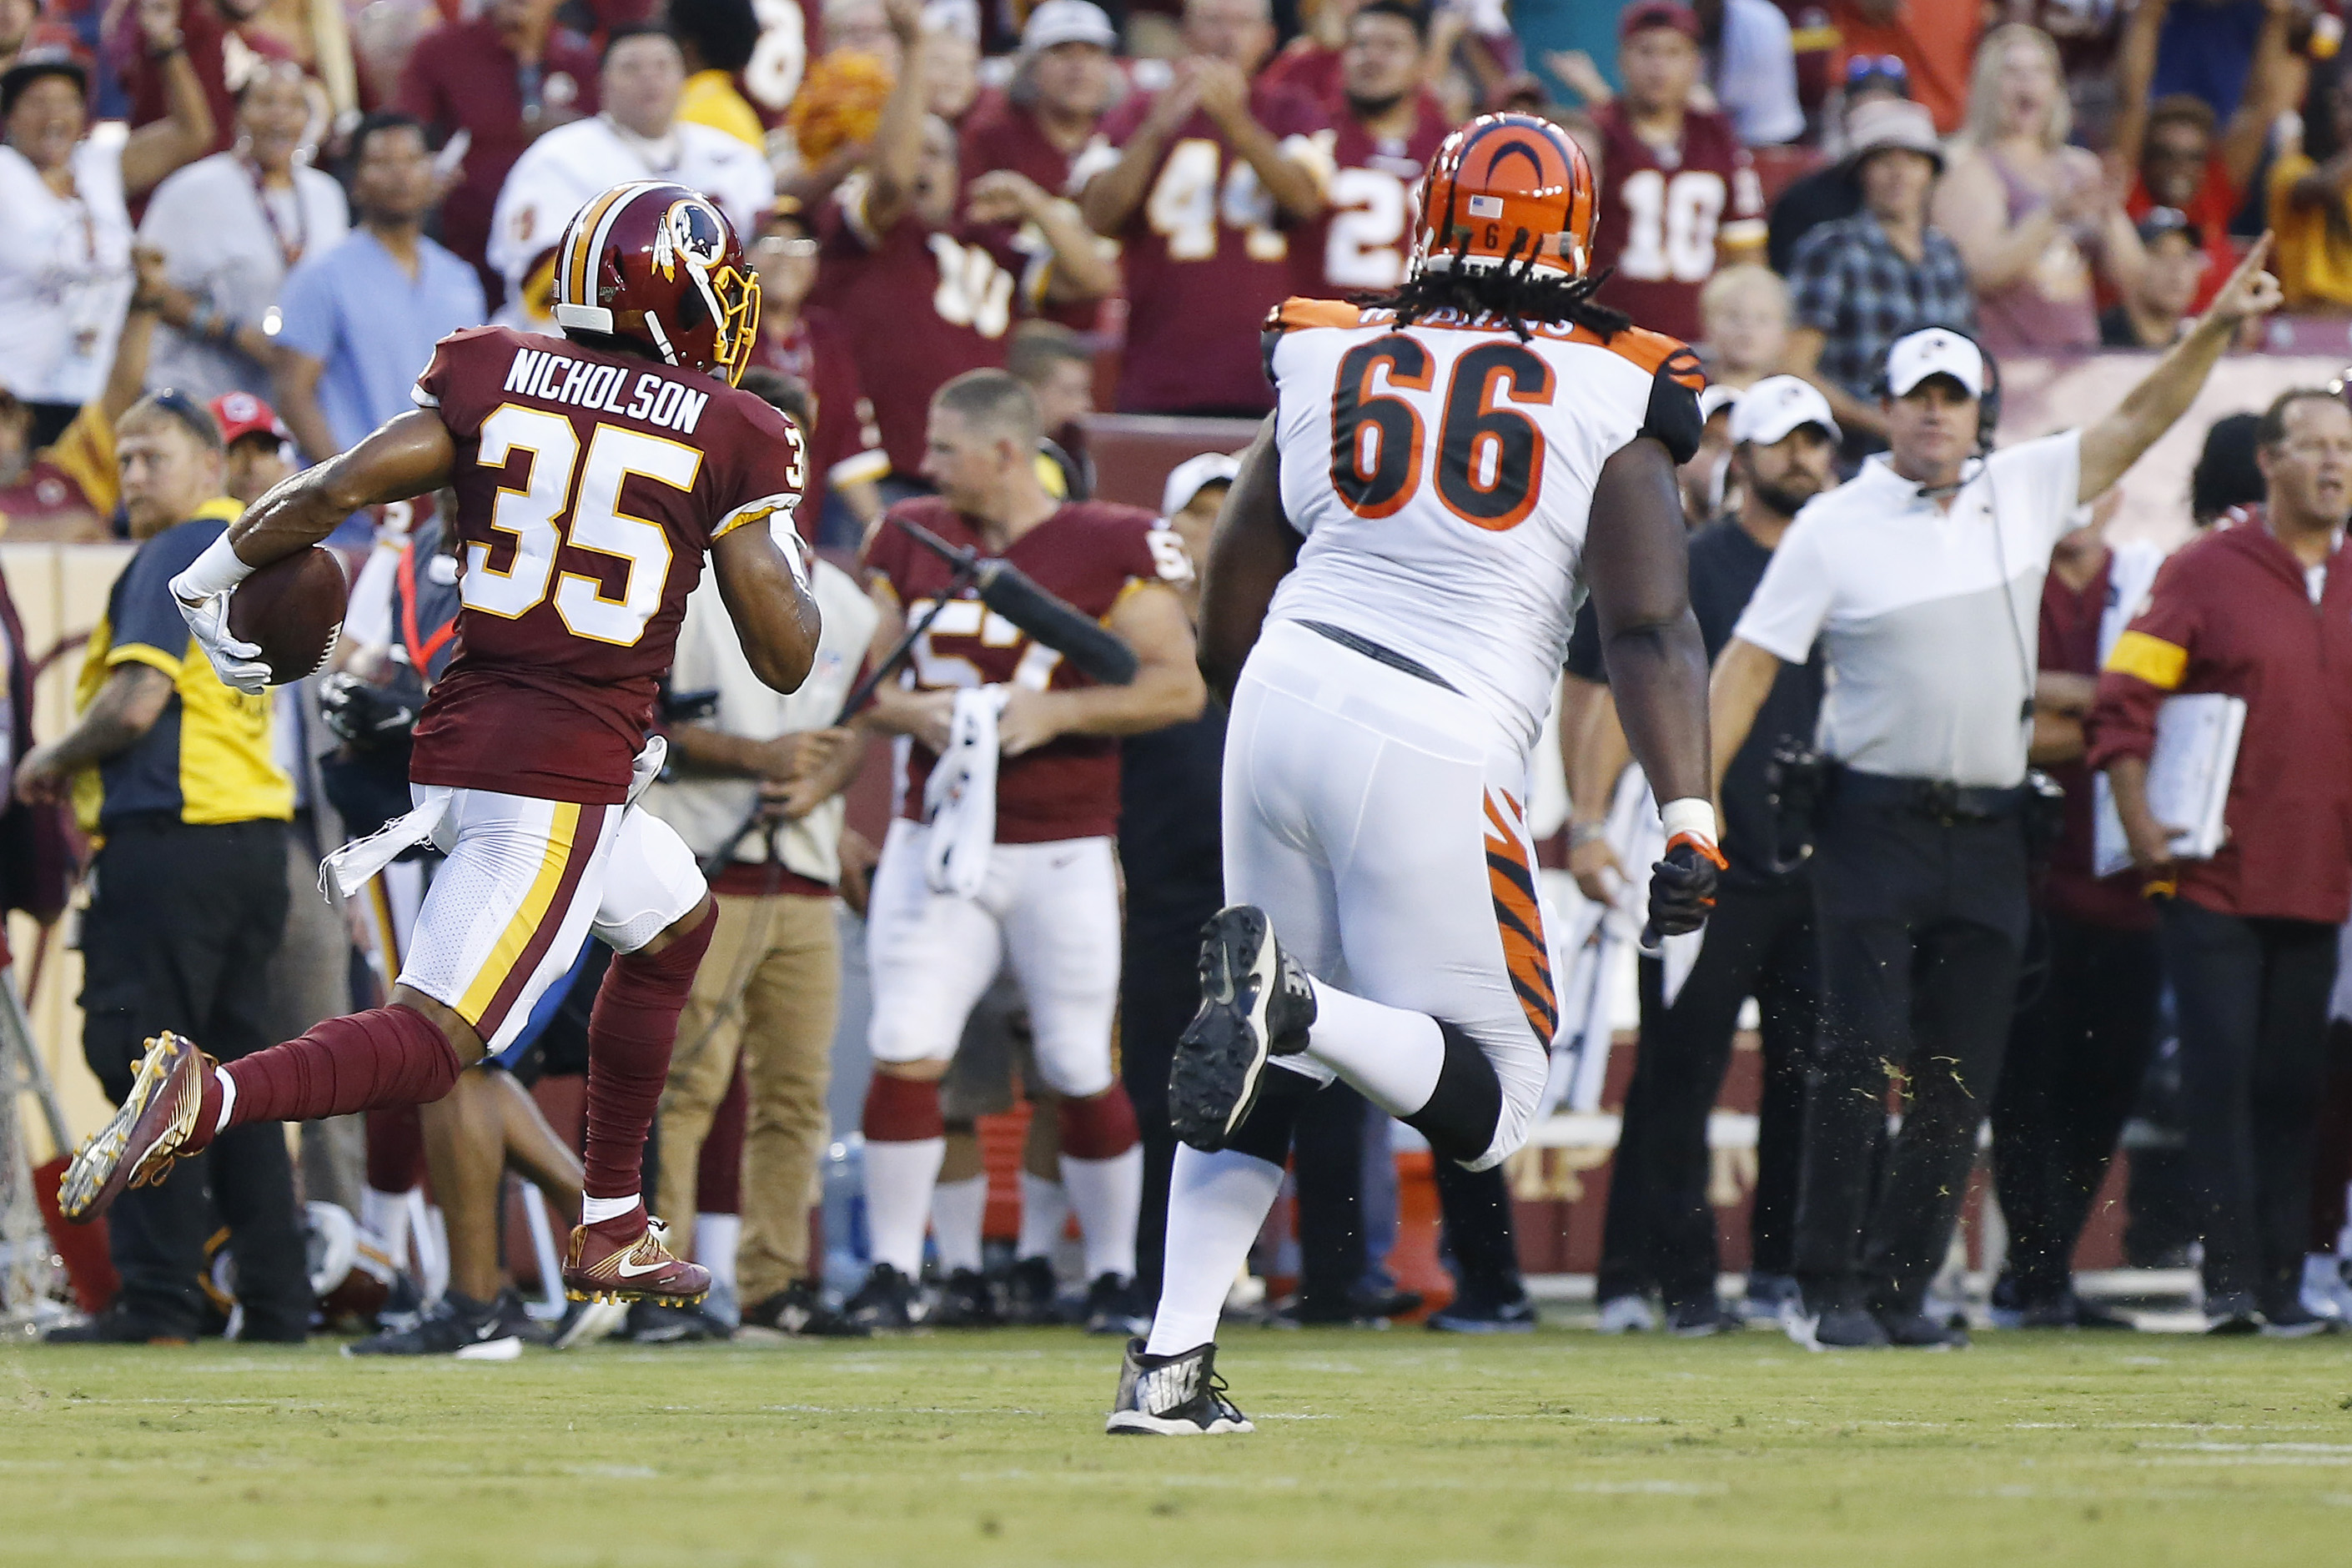 NFL: Preseason-Cincinnati Bengals at Washington Redskins